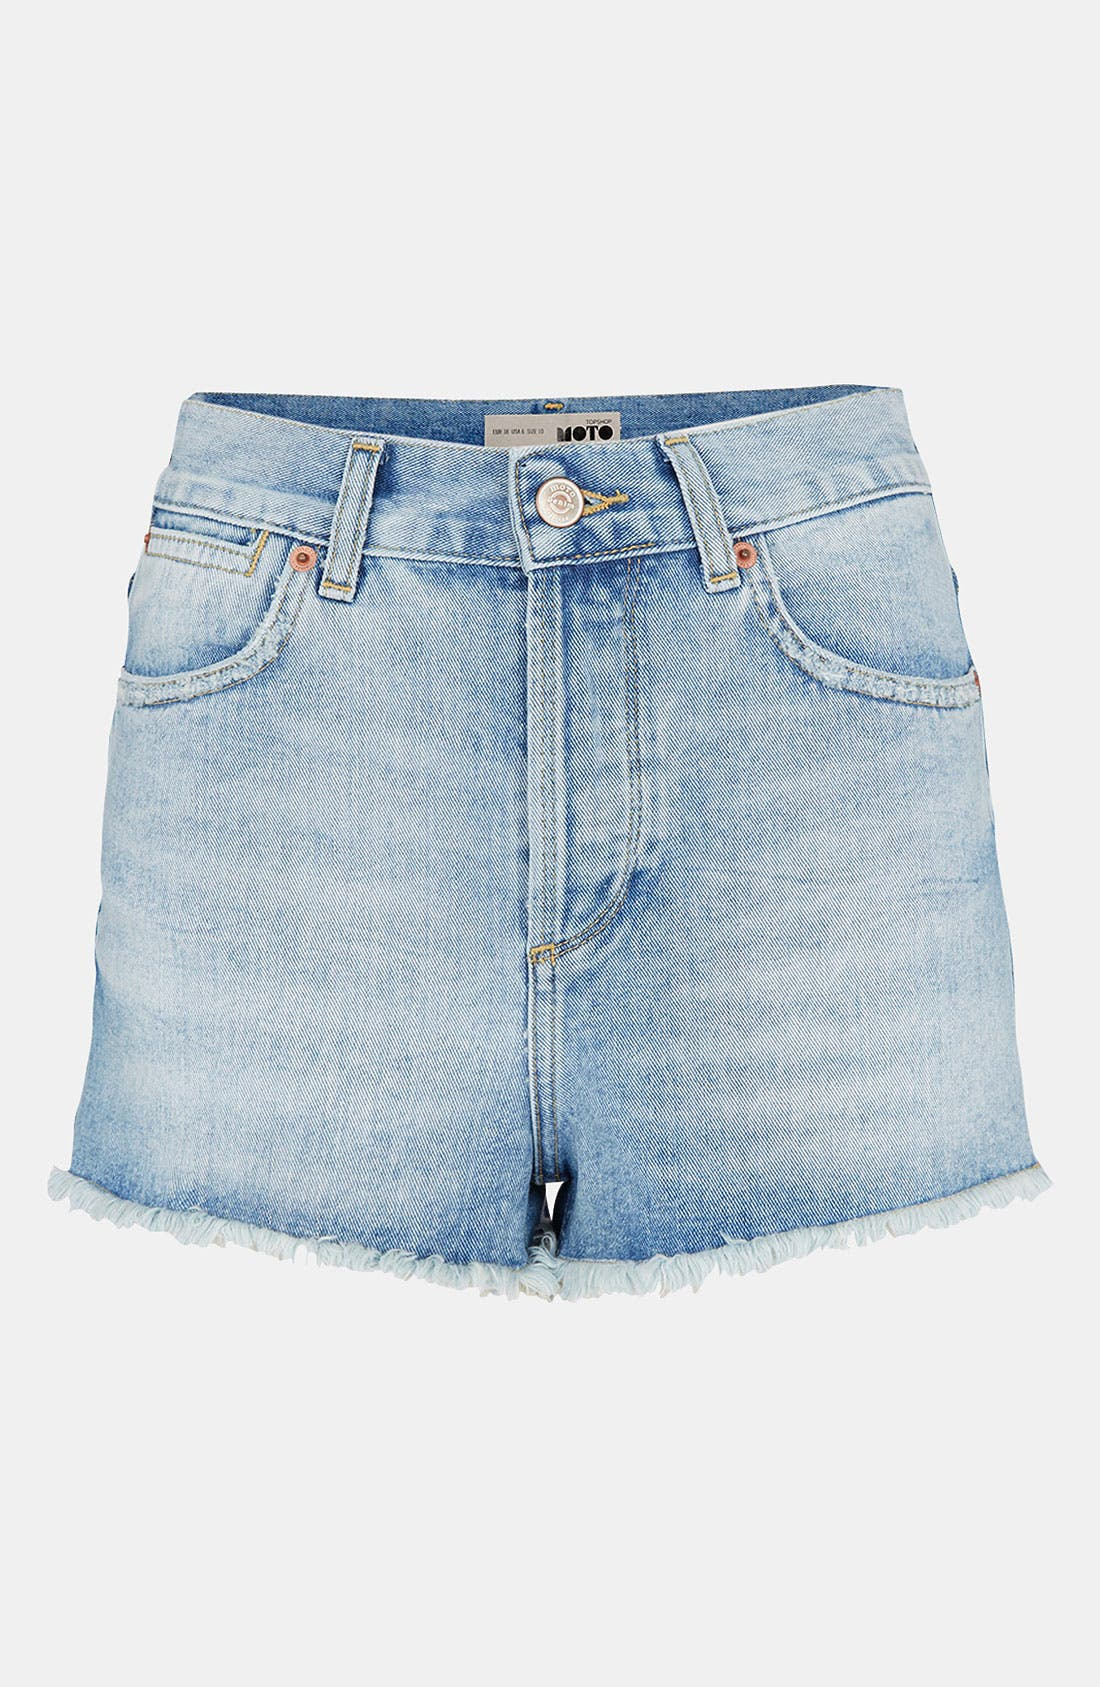 Main Image - Topshop Moto 'Ruthie' Cutoff Denim Shorts